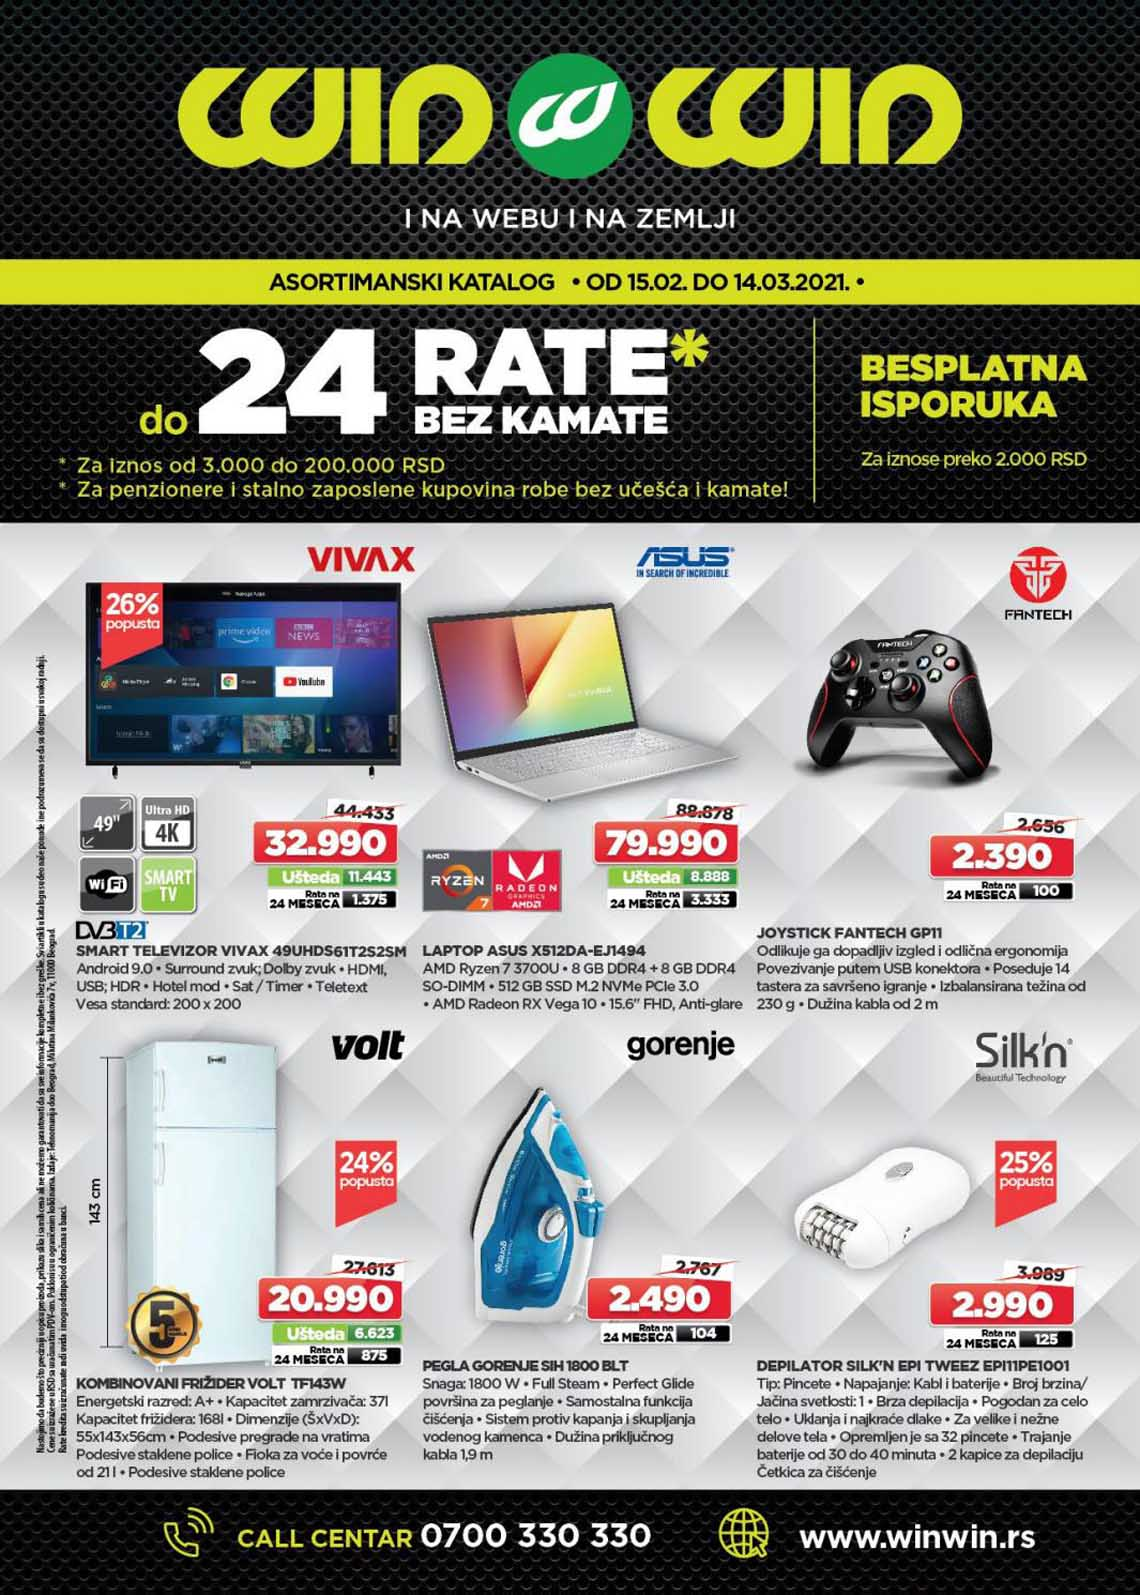 WIN WIN Katalog -  Akcija sniženja do 14.03.2021.